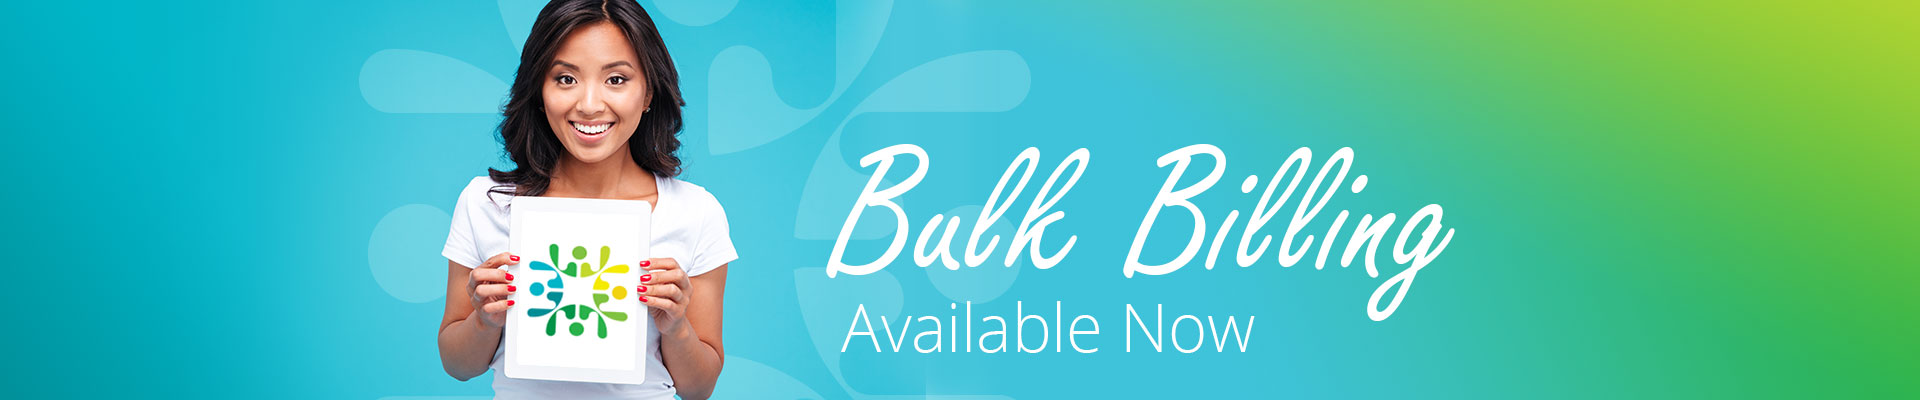 Bulk Billing Available Now